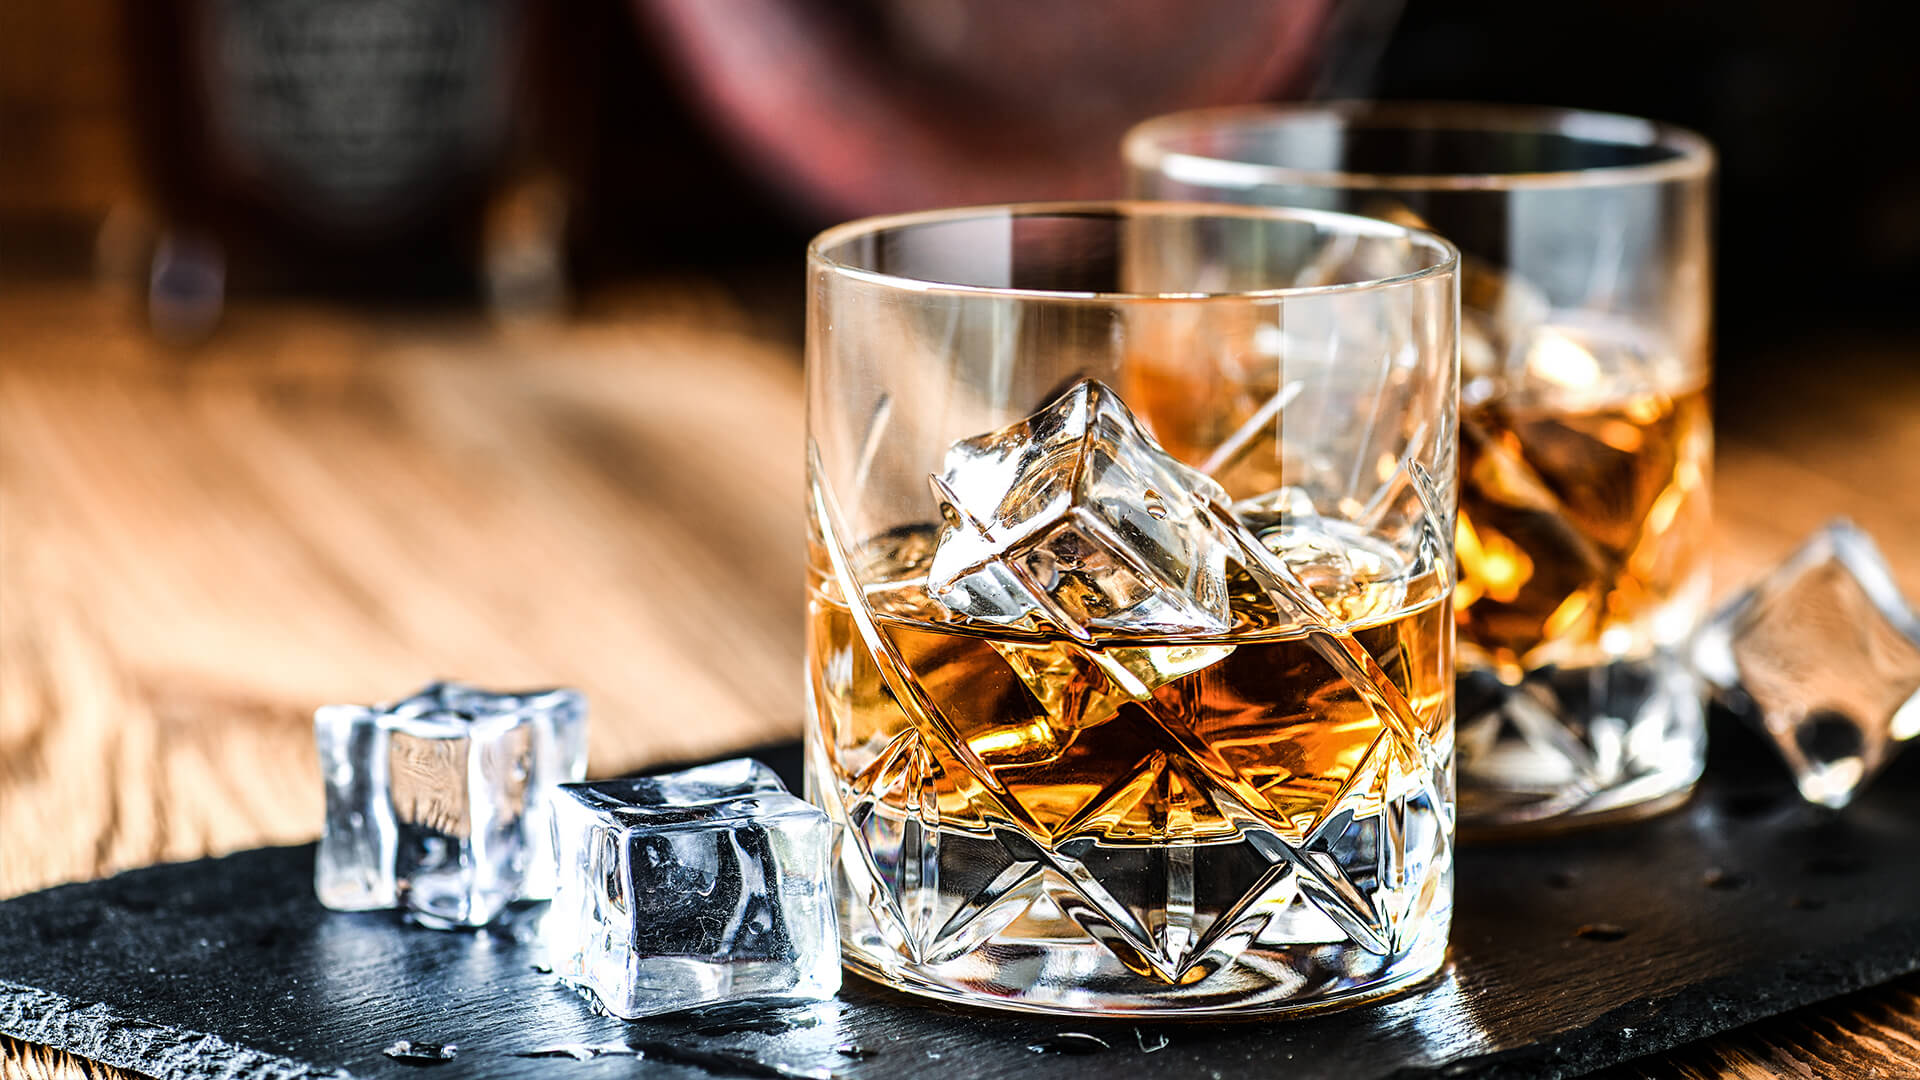 Investing in a distillery company